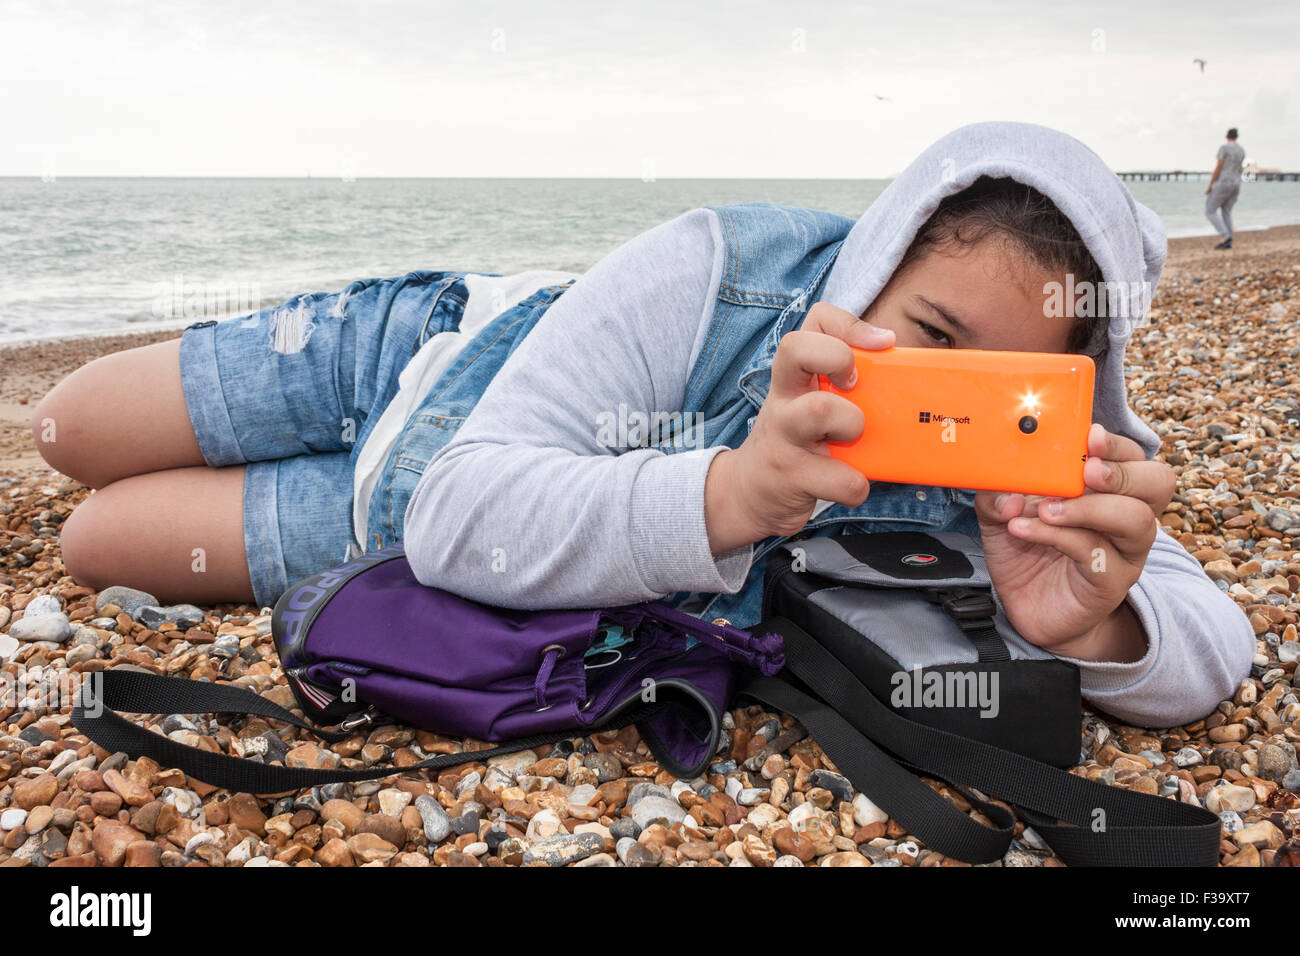 Teenage girl takes photo with flash using mobile phone. Stock Photo